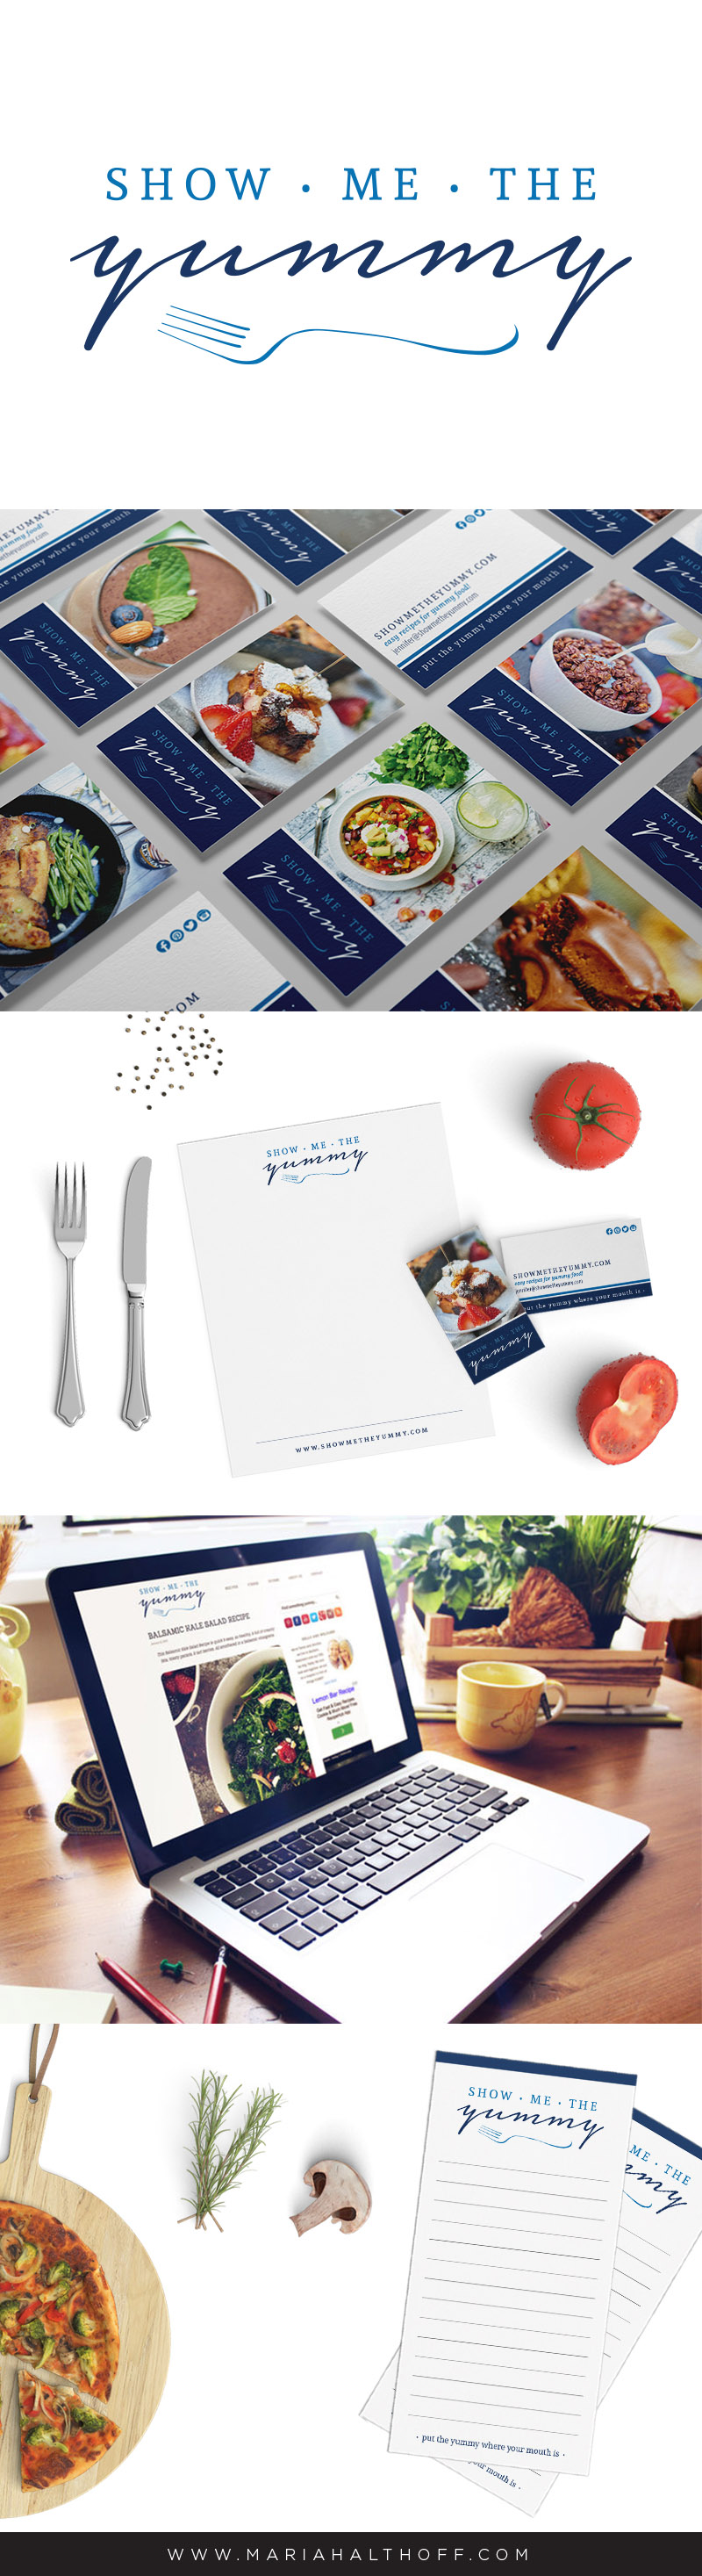 Food Blog logo and brand design, business card design, letterhead design, notepad design – Show Me The Yummy